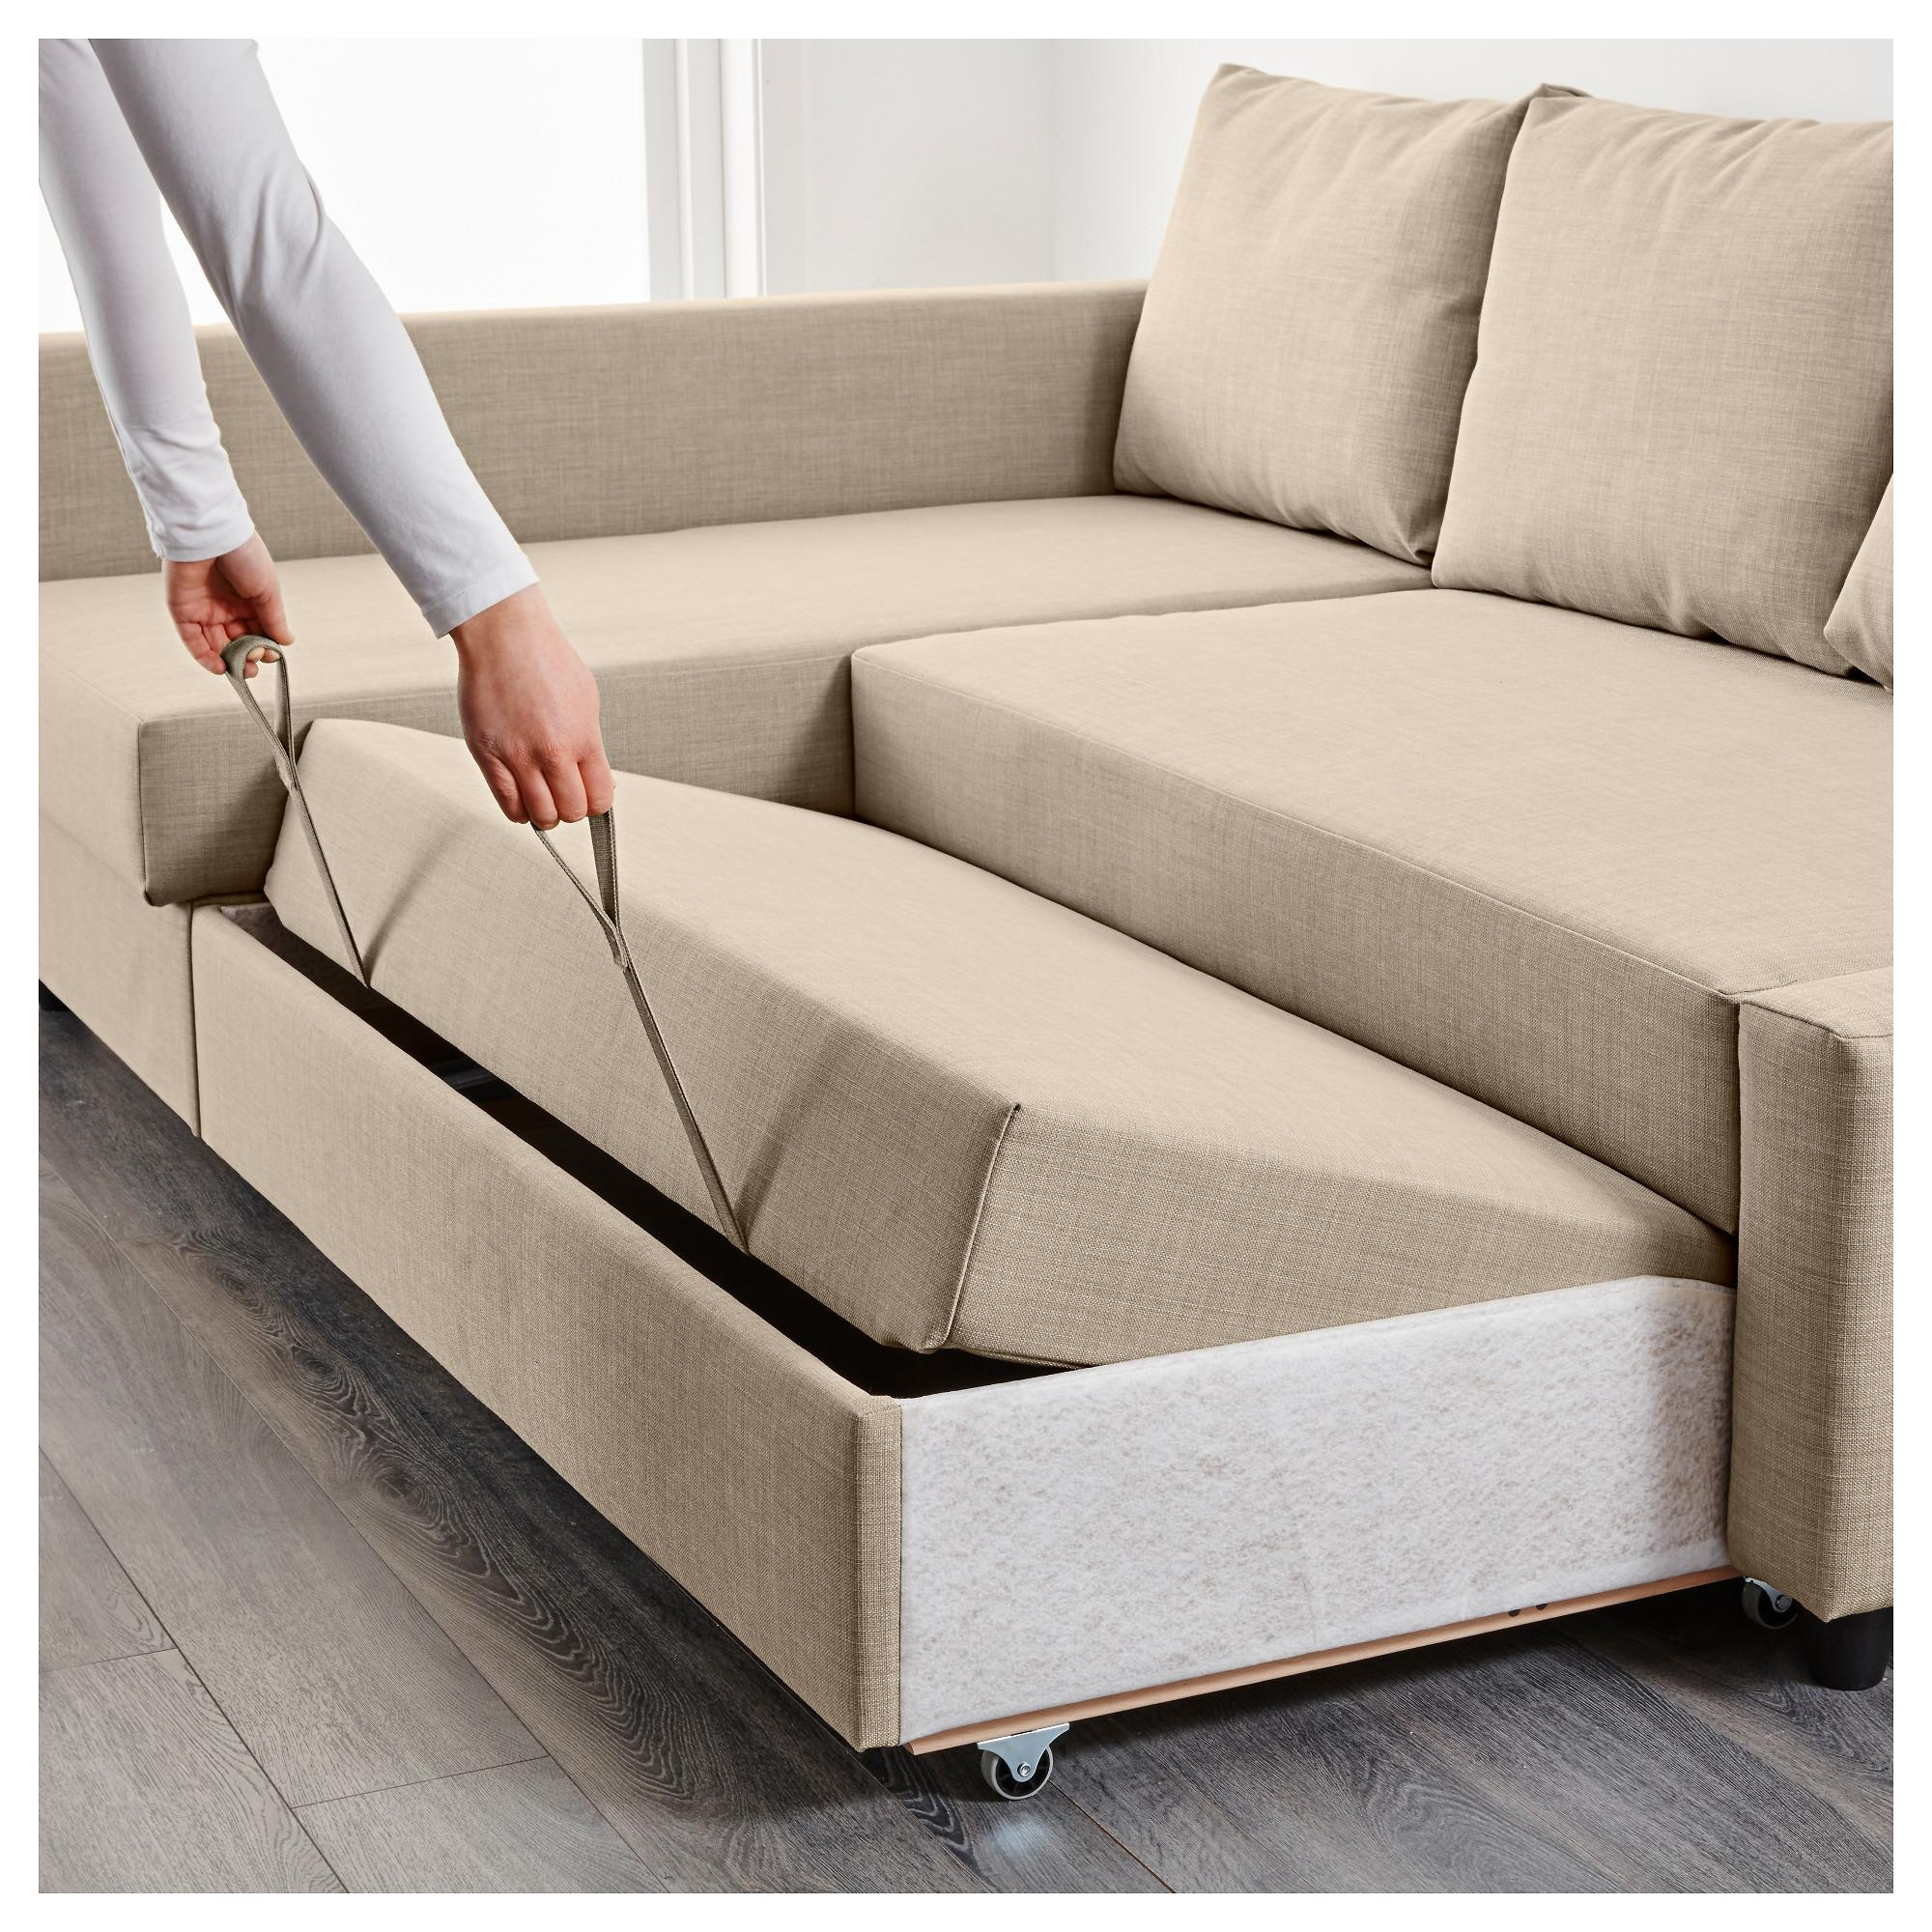 Friheten Corner Sofa Bed With Storage Skiftebo Beige – Ikea Throughout Ikea Storage Sofa Bed (Image 5 of 20)